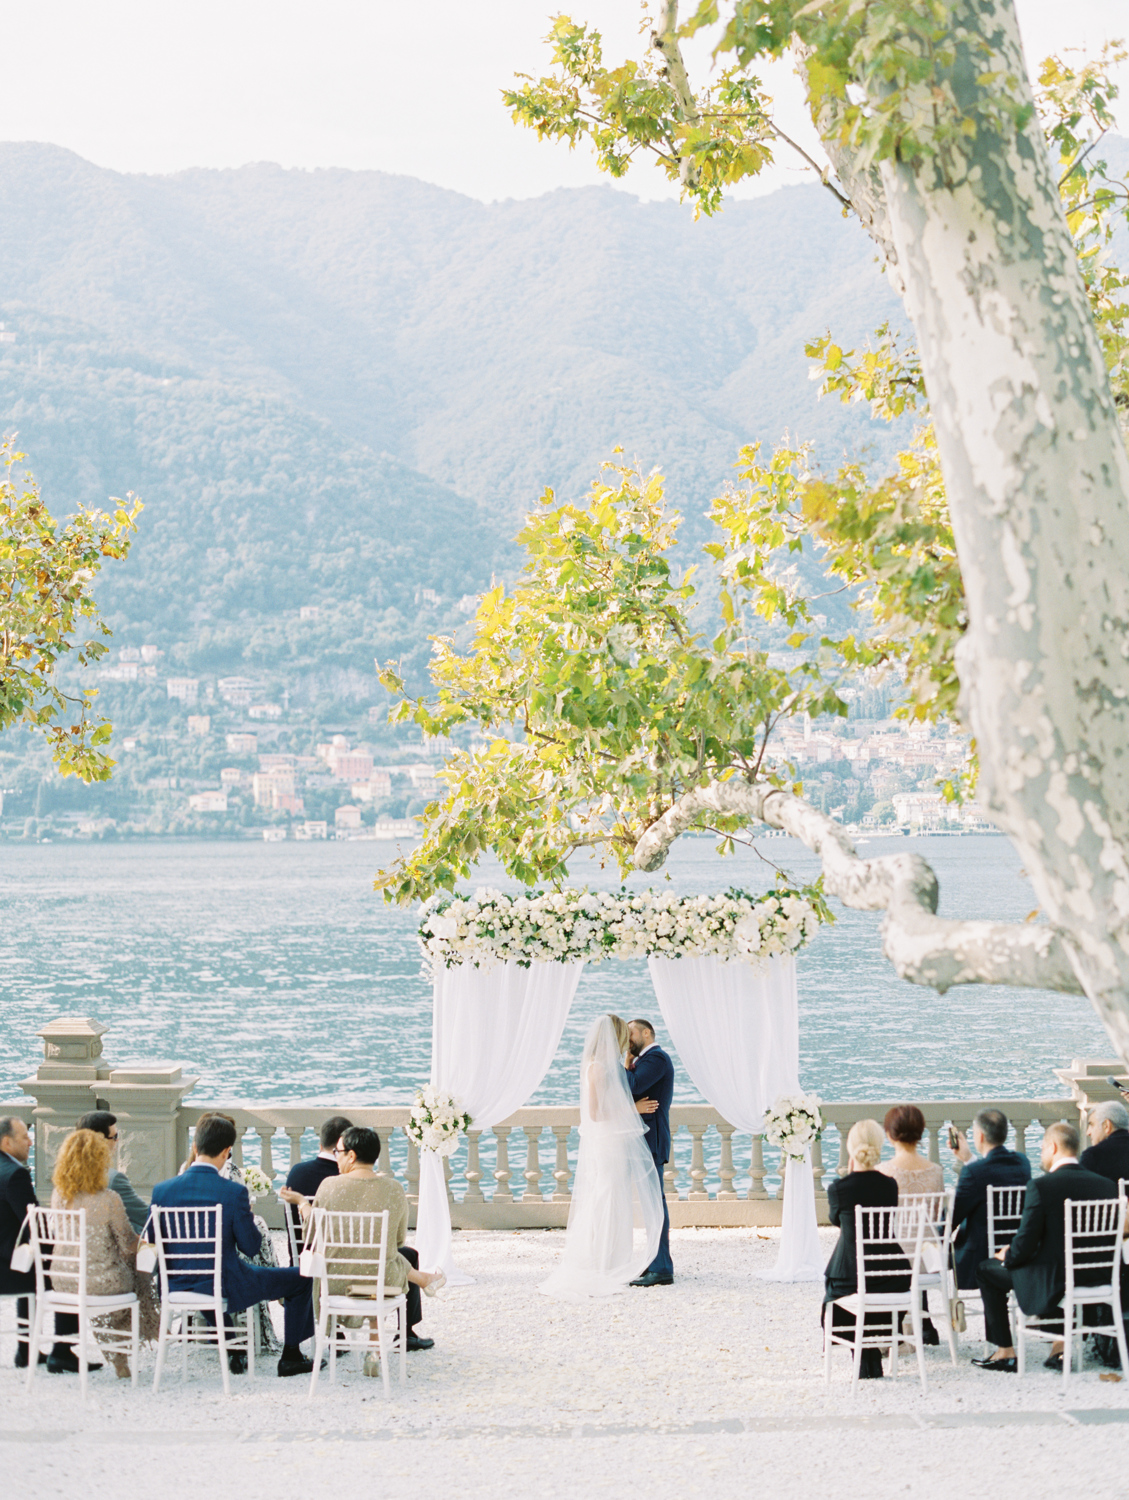 Wedding kiss Castadiva resort lago di como Italy